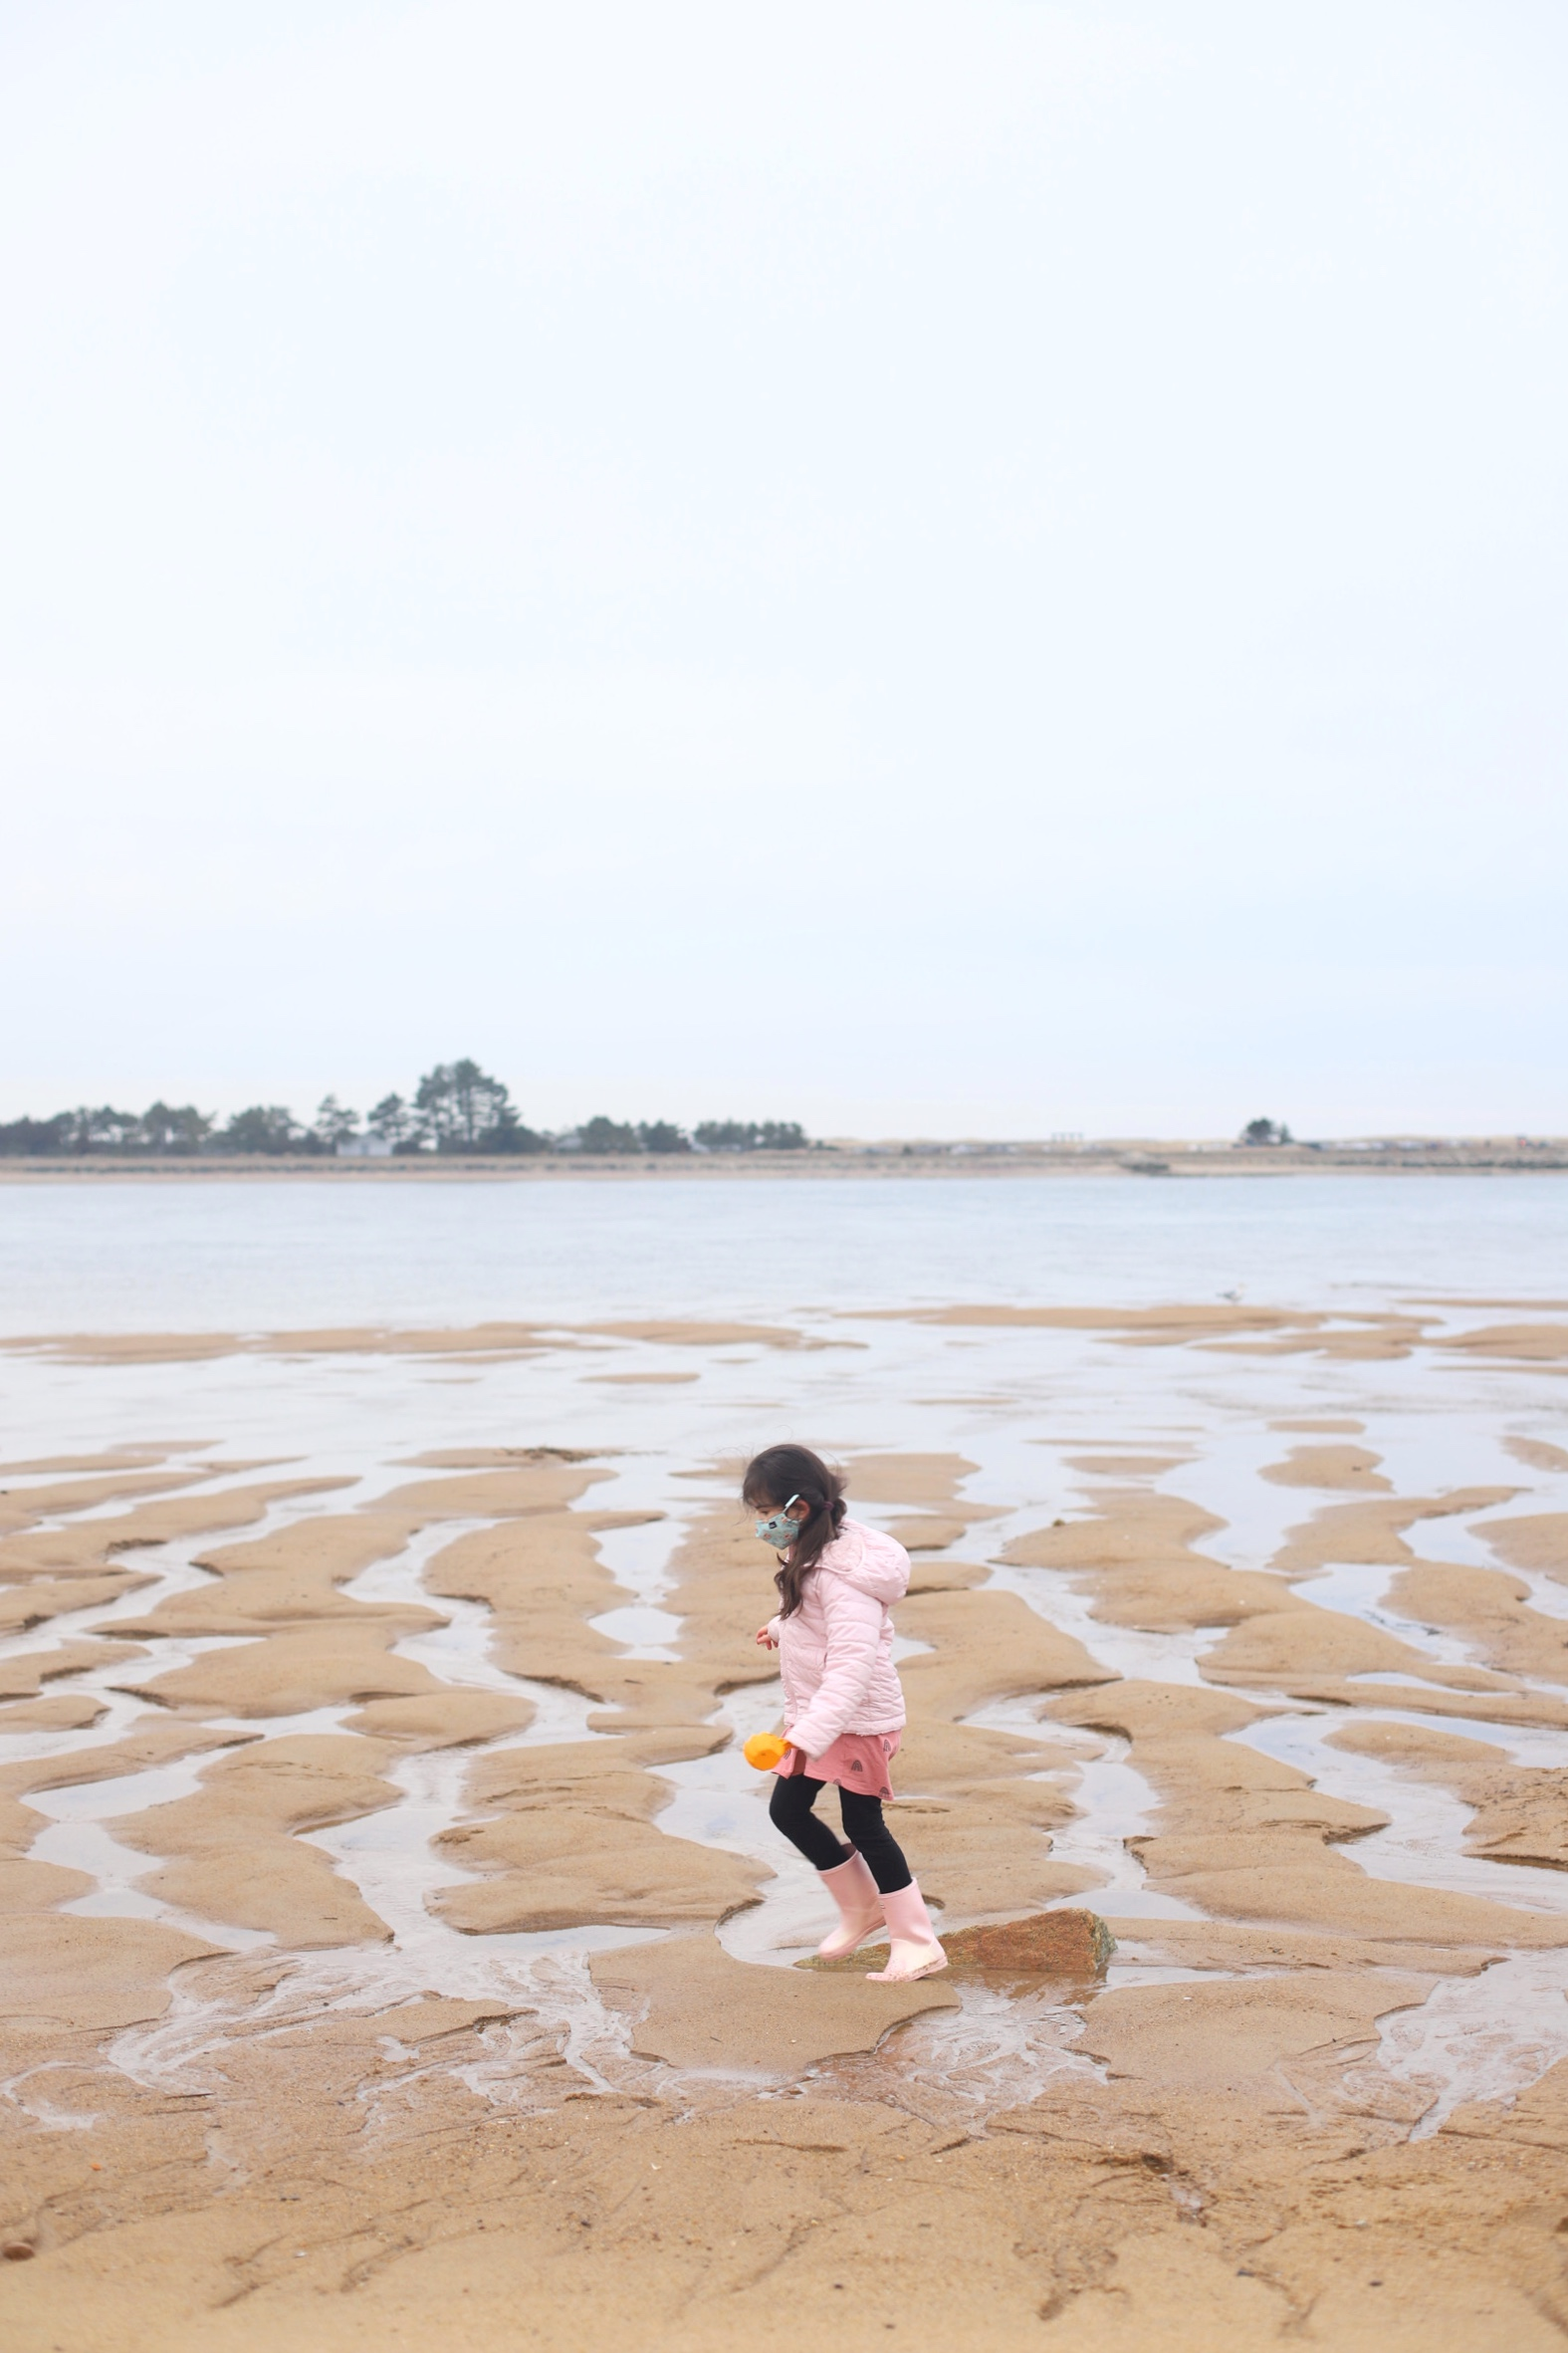 beach day with kids in winter